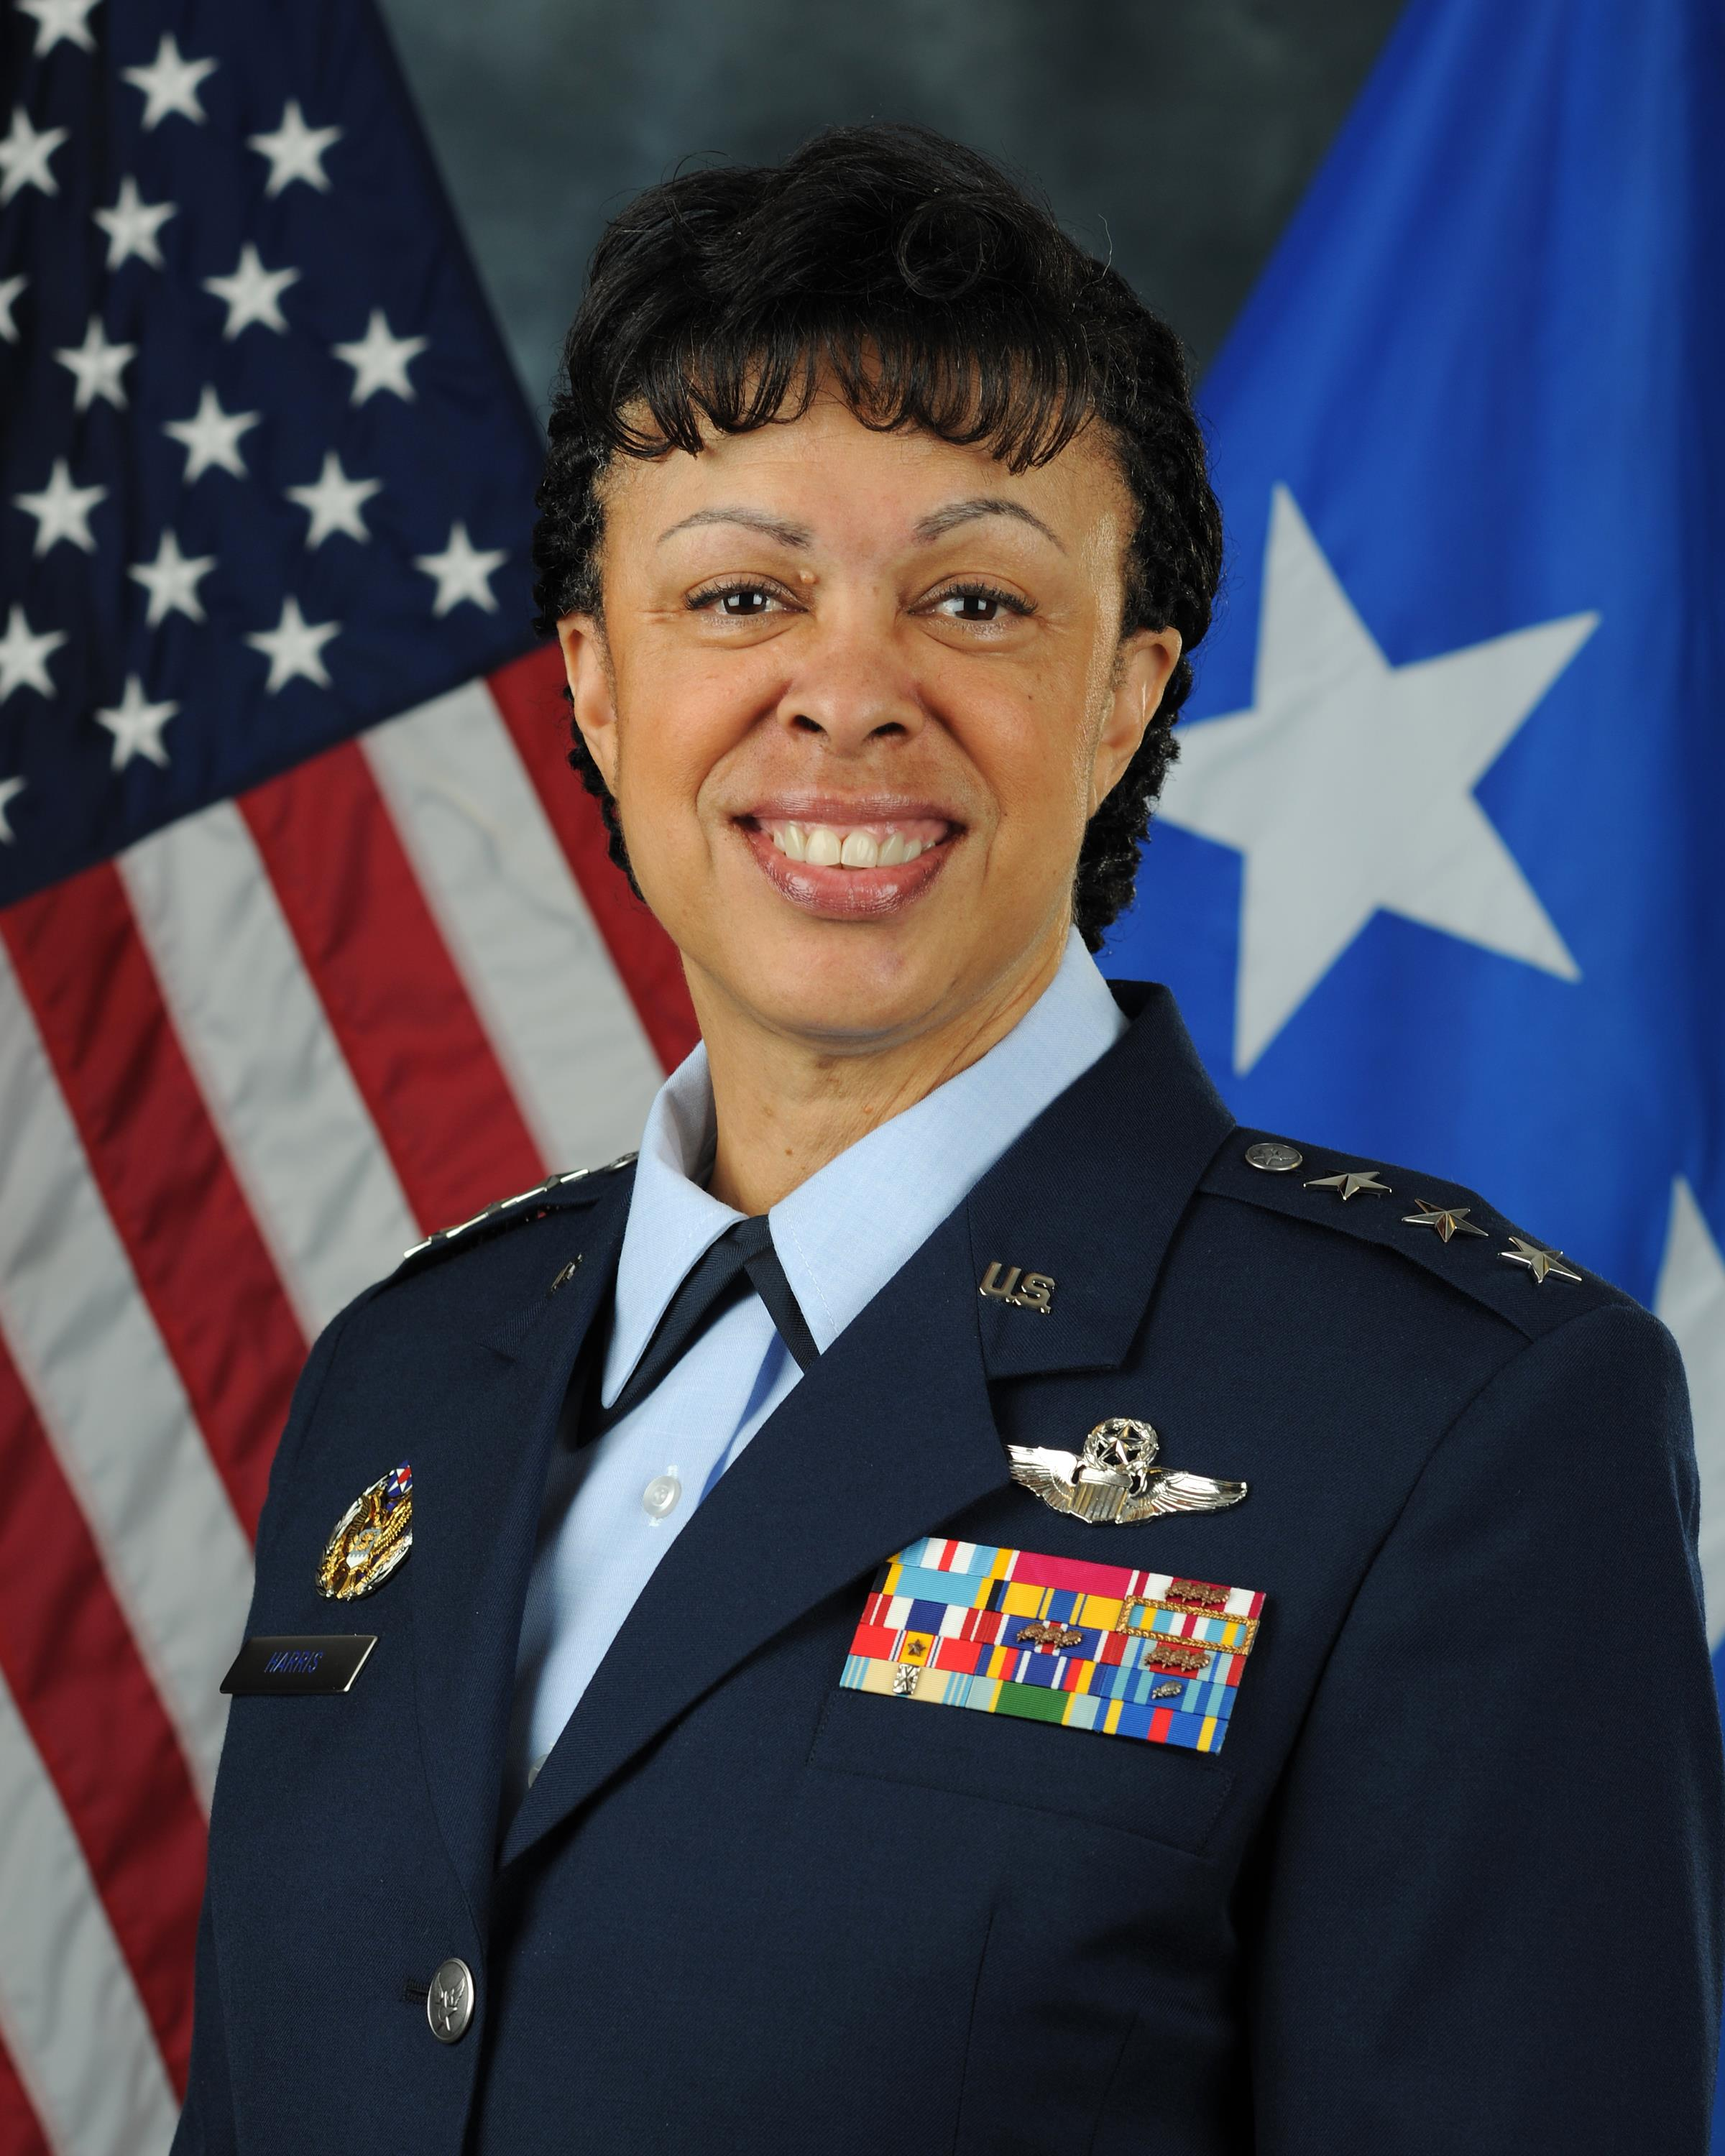 Lt. Gen. Stayce D. Harris